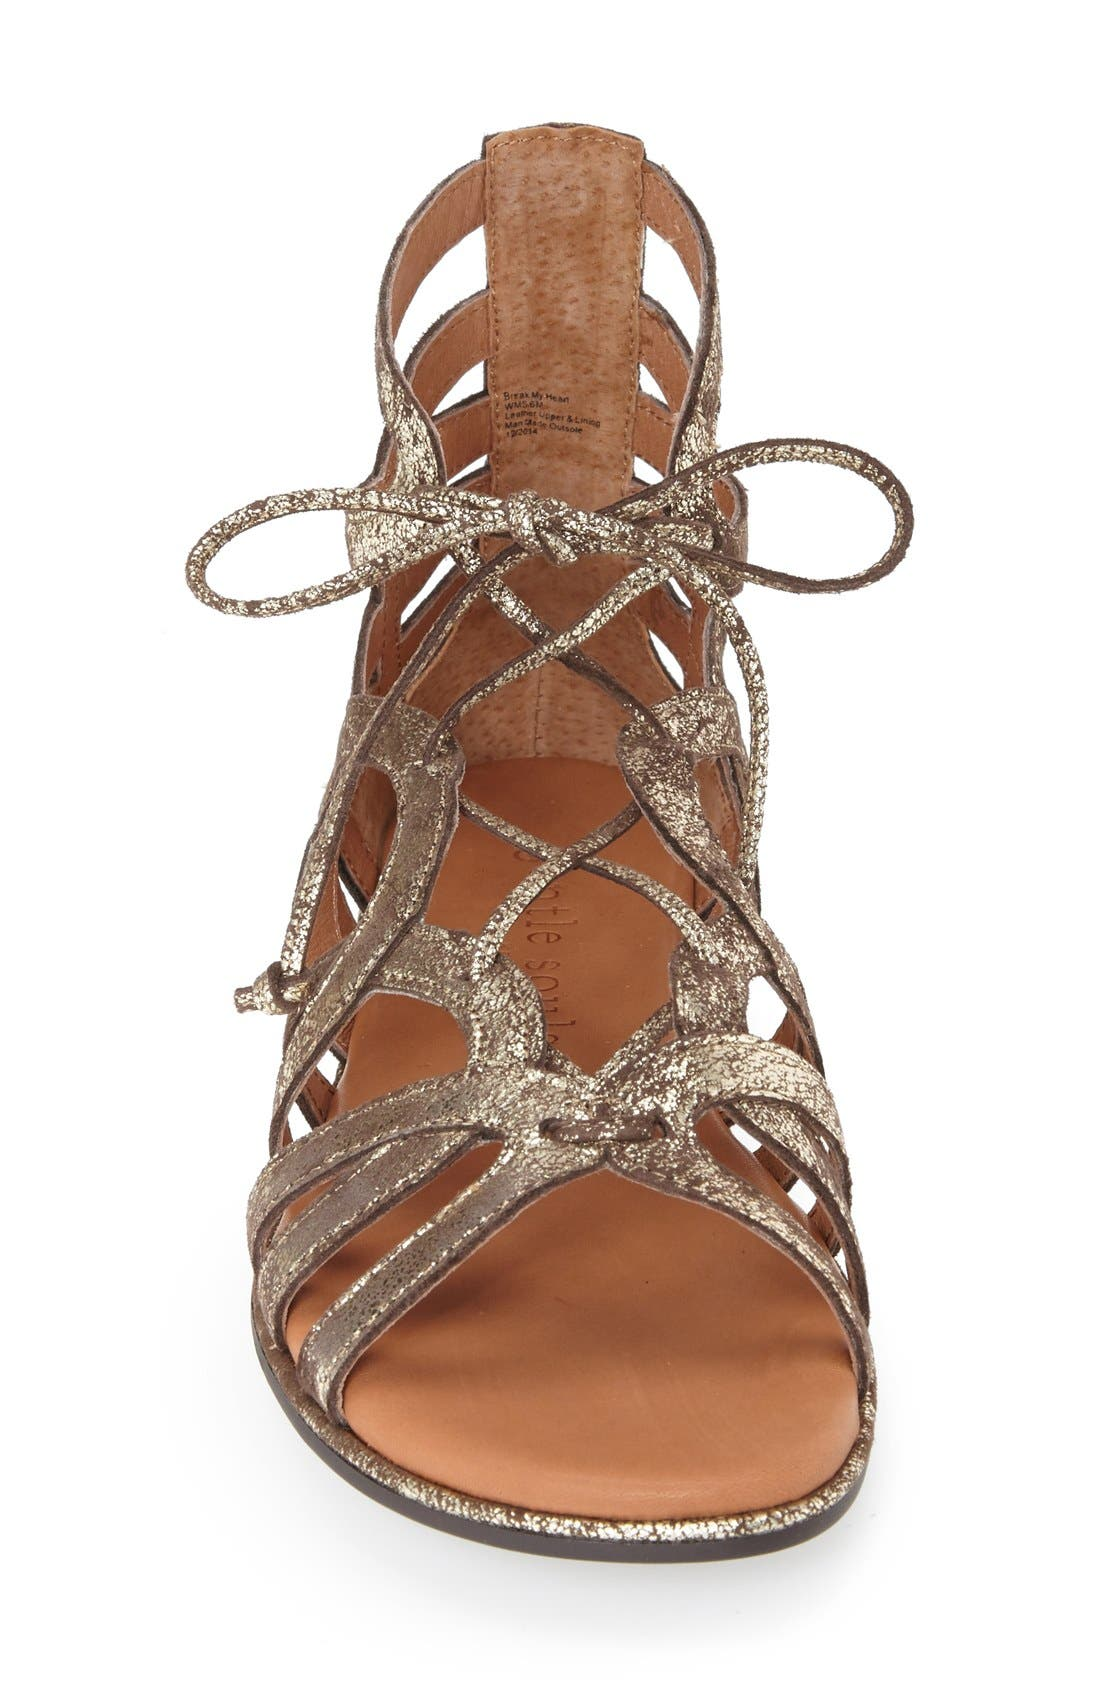 GENTLE SOULS BY KENNETH COLE,                             'Break My Heart 3' Cage Sandal,                             Alternate thumbnail 3, color,                             BROWN LEATHER